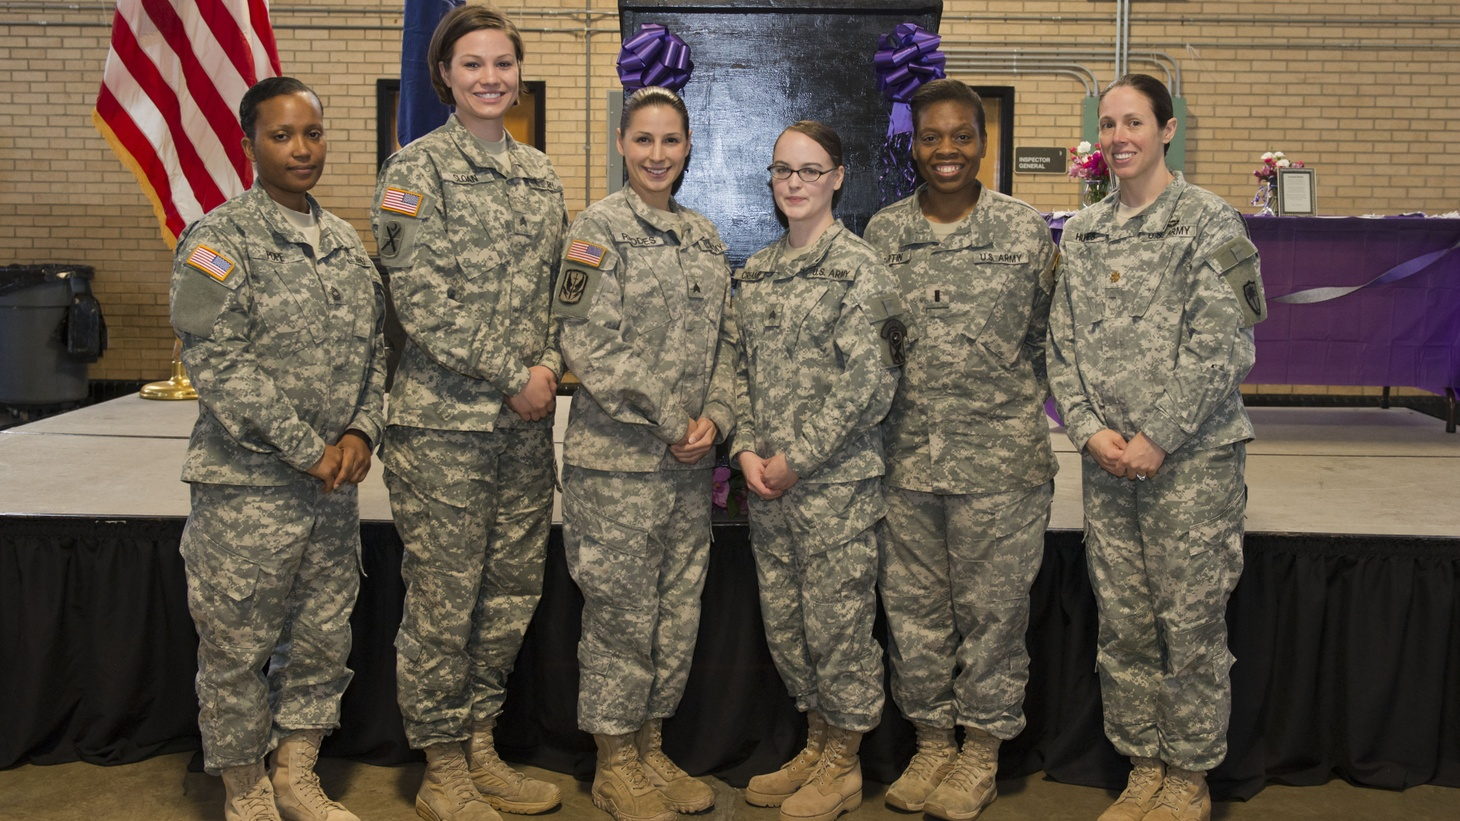 Members of the South Carolina National Guard attend the annual women's history month celebration on March 18, 2015, at the Bluff Road Armory, Columbia, South Carolina.